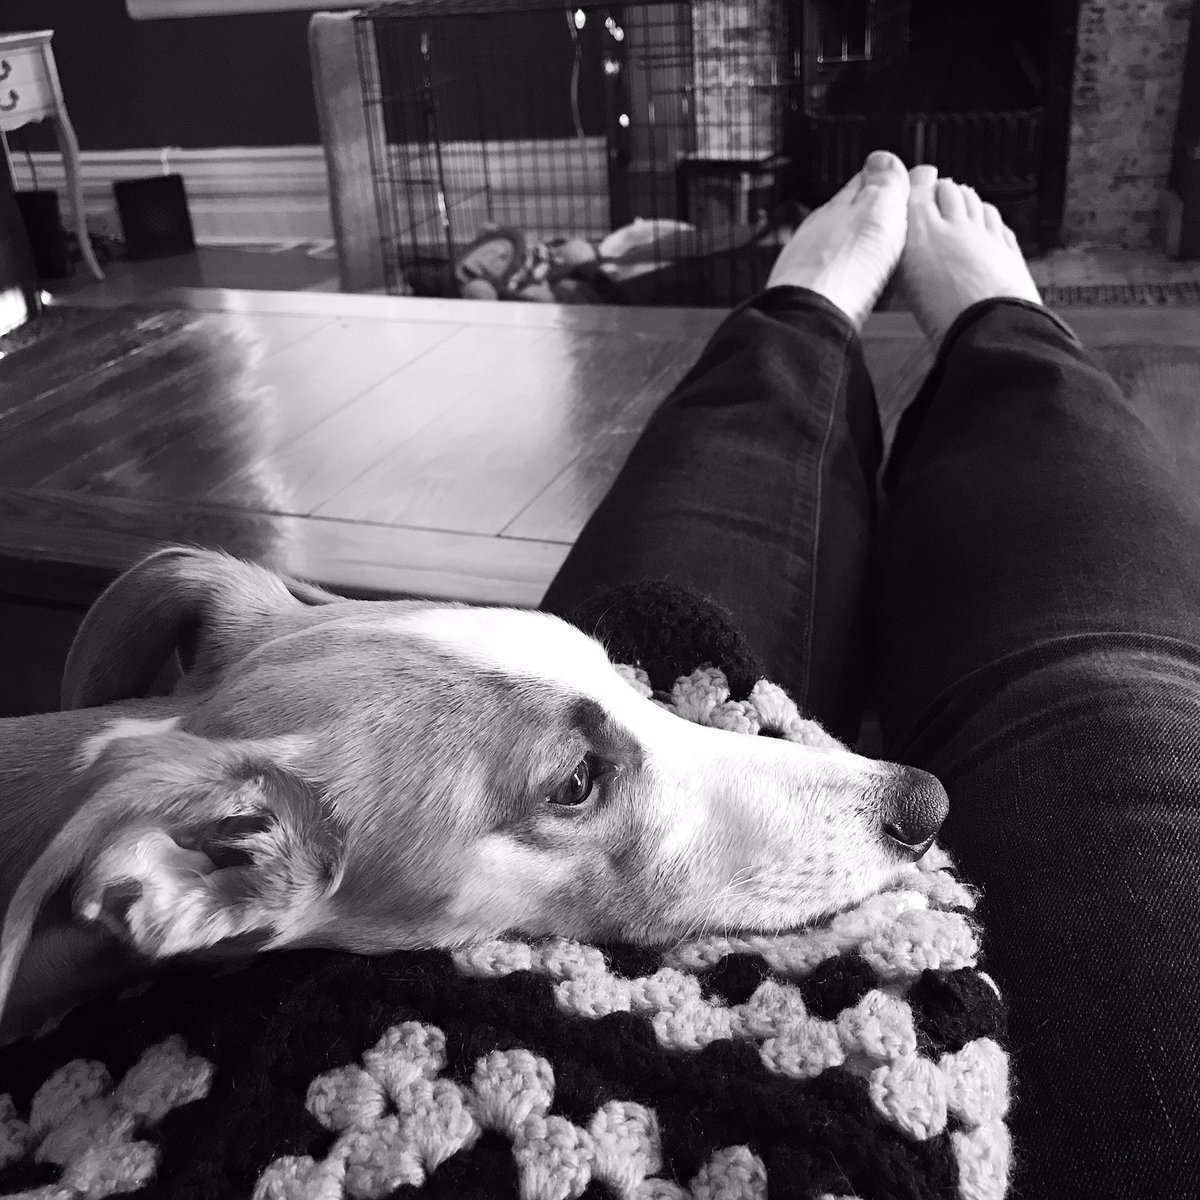 When I get home, she is my most beautiful and relaxing presence. The evenings are too short, but the sunshine is warm and glowing. #missbliss #blissful #dogdays #sunnyevenings #shesmybestie #dogs #DogsofTwittterpic.twitter.com/YnJjgCdiy0